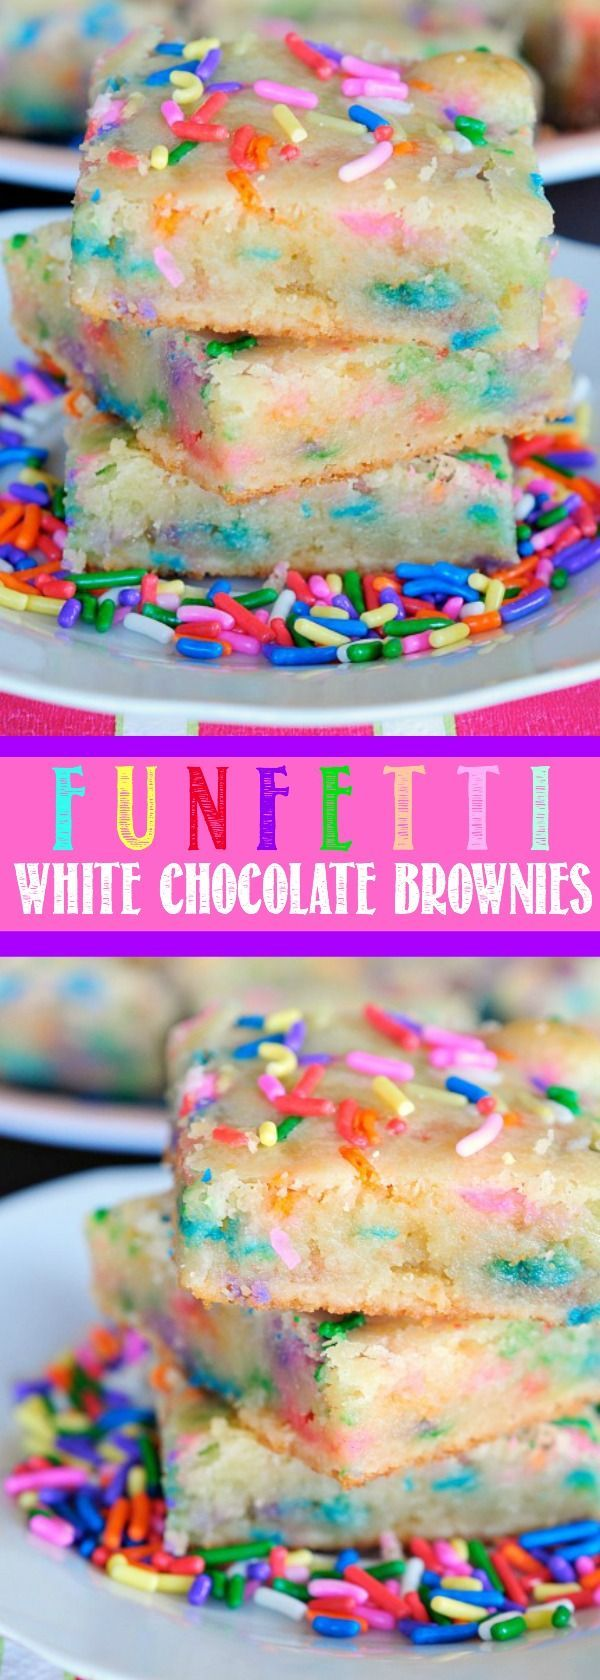 These Funfetti White Chocolate Brownies taste like funfetti cake with the fudgy, chewy texture of a brownie! Perfect for Easter dessert or birthday Parties!